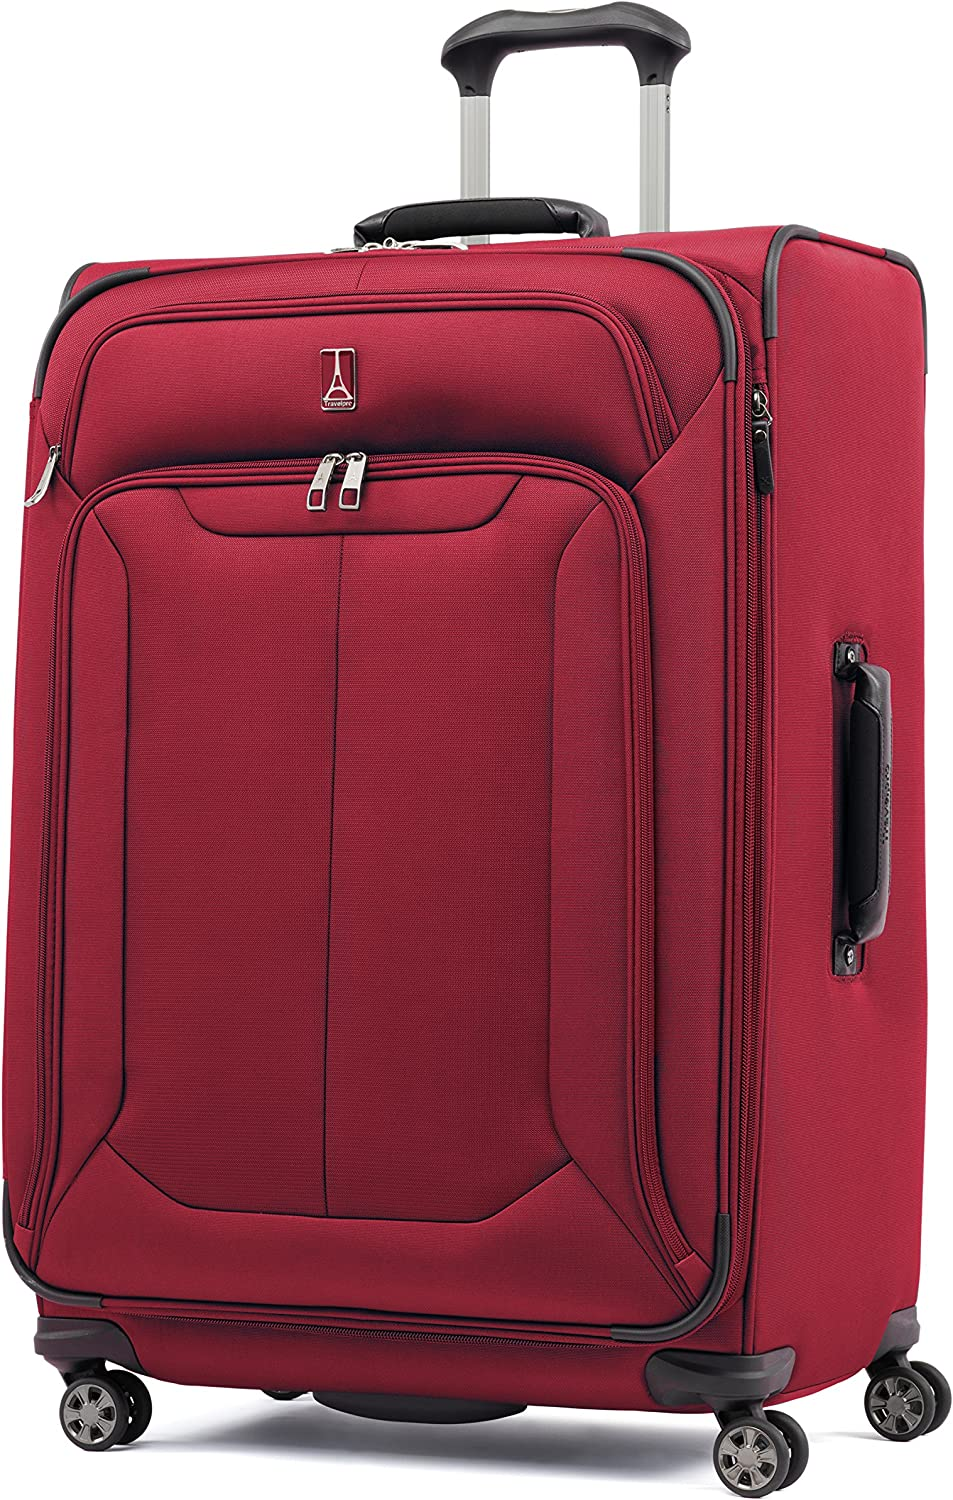 Travelpro Skypro Lite 29 Expandable 8-Wheel Luggage Spinner